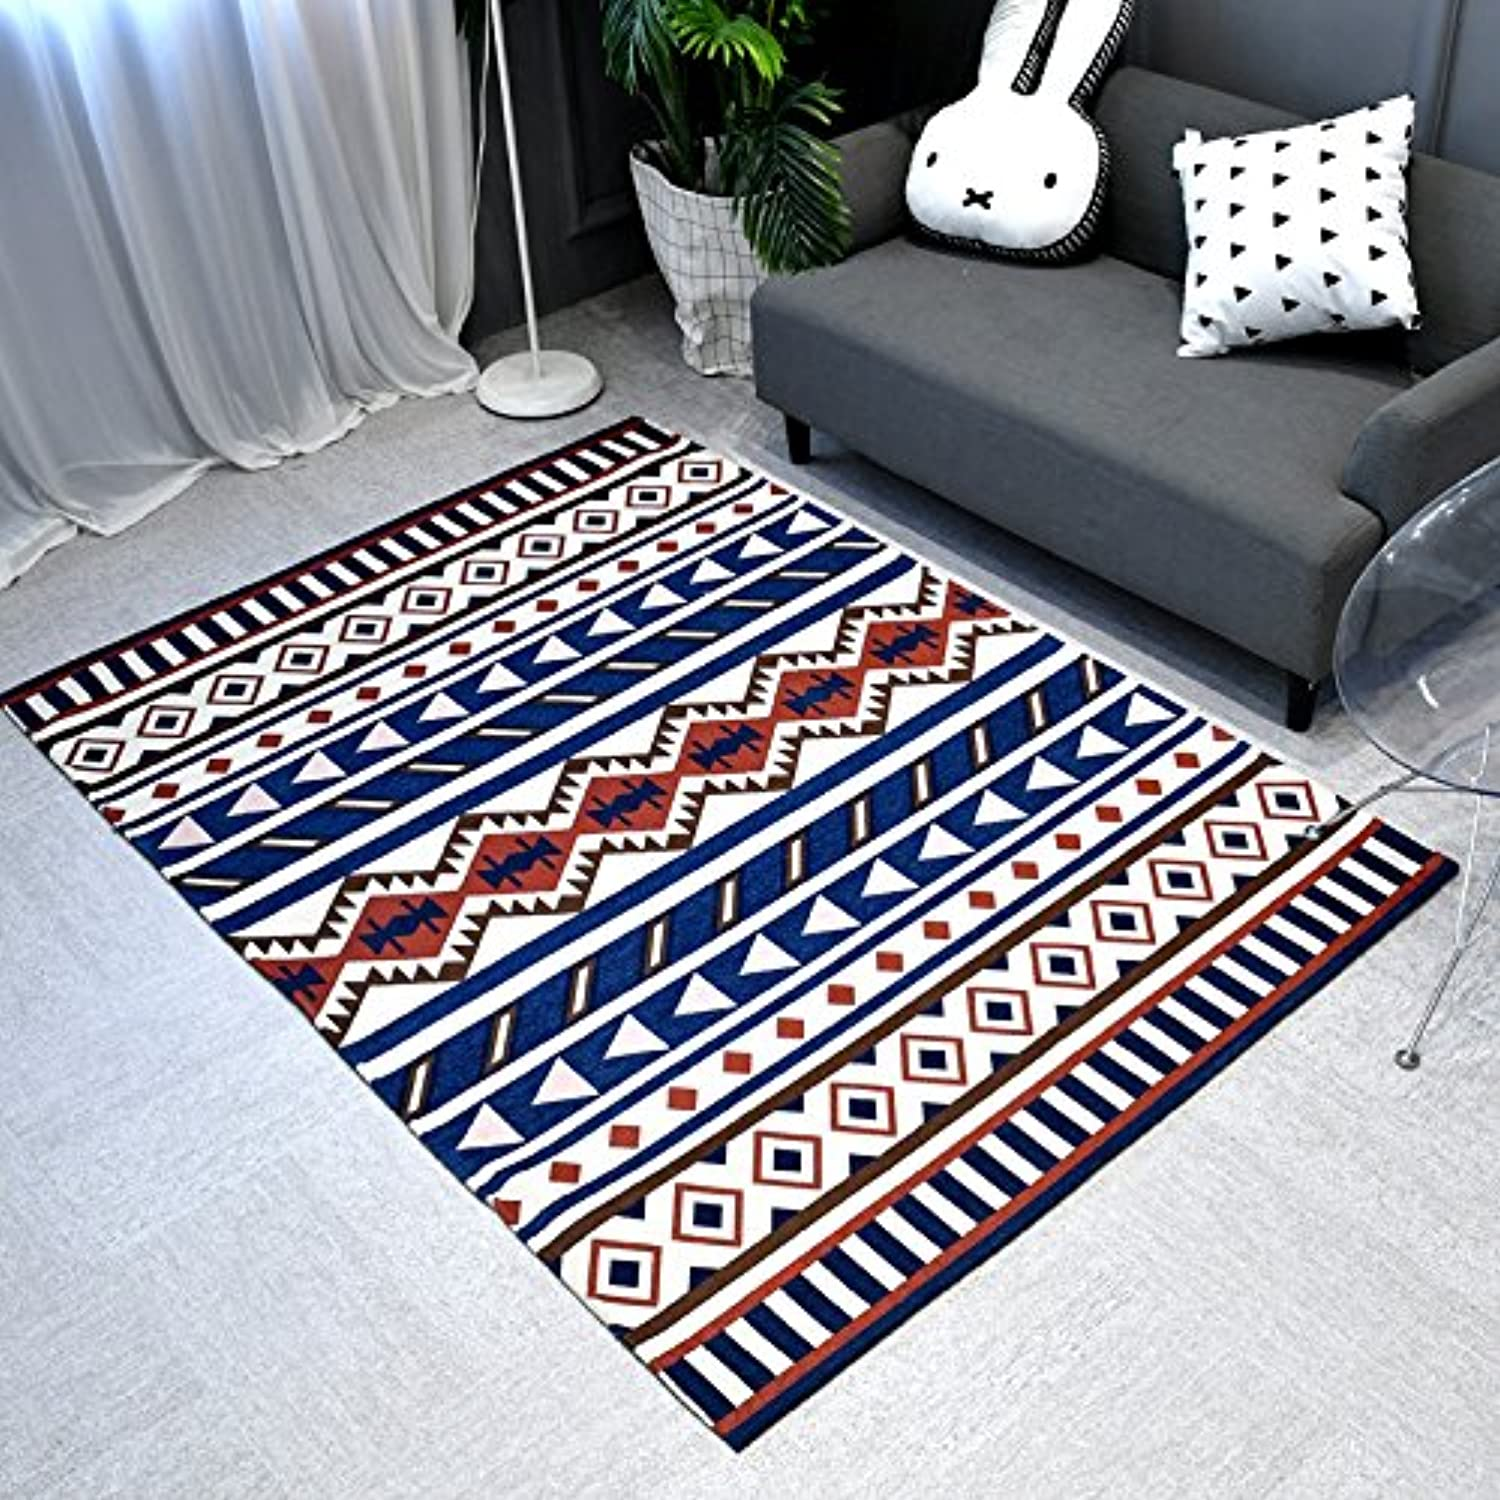 Nordic doormat geometric style, living room carpet, rectangular tea table sofa bedroom, skid proof and dirty proof.-B-120x180cm(47x71inch)